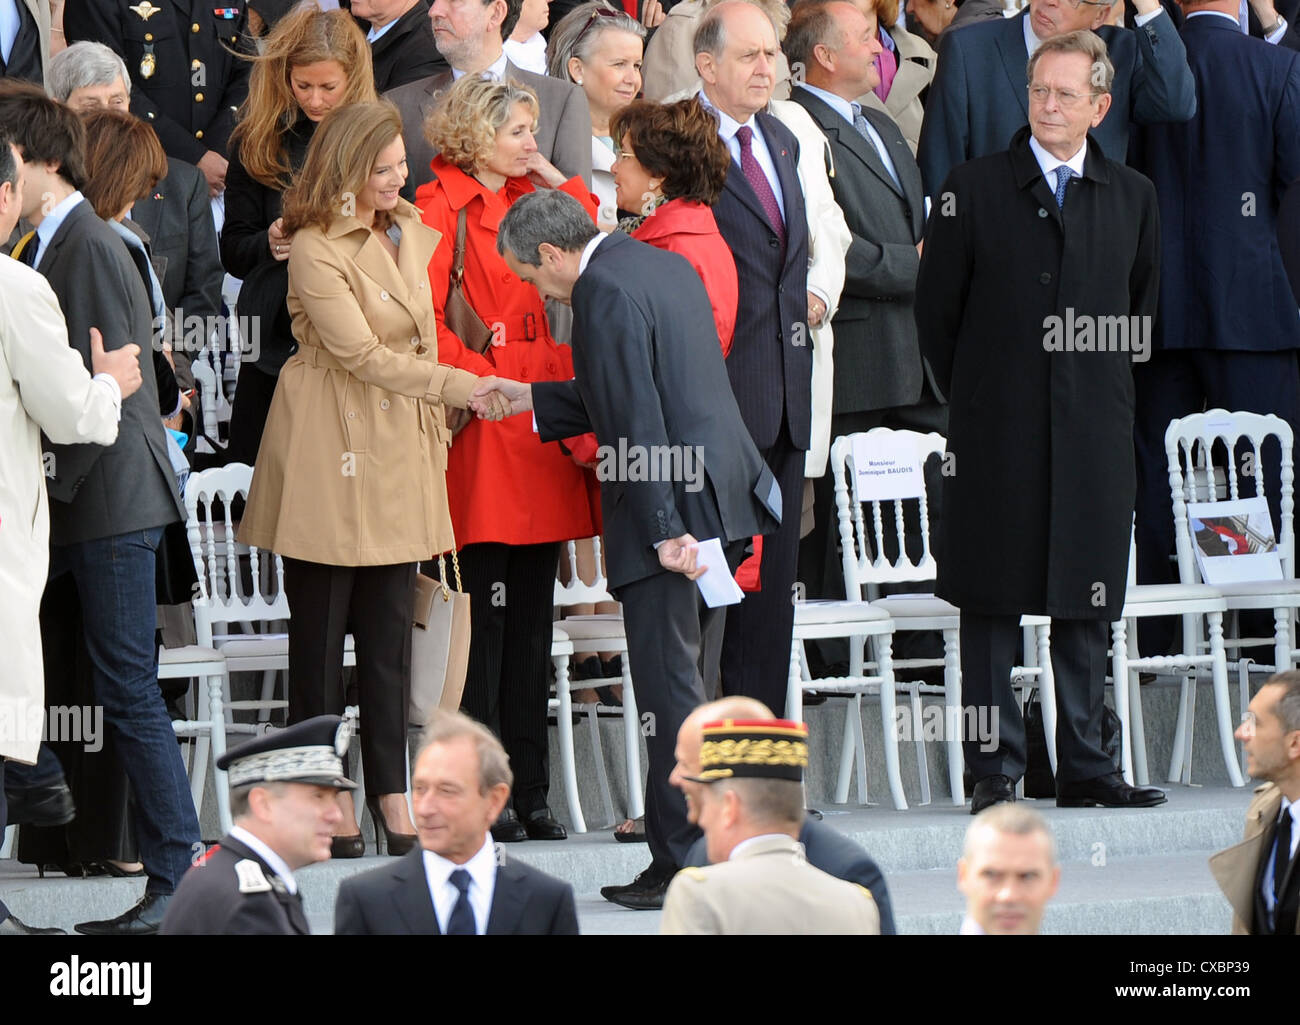 Valerie Trierweiler, the partner of French president Francois Hollande, is being greeted during the Bastille day - Stock Image